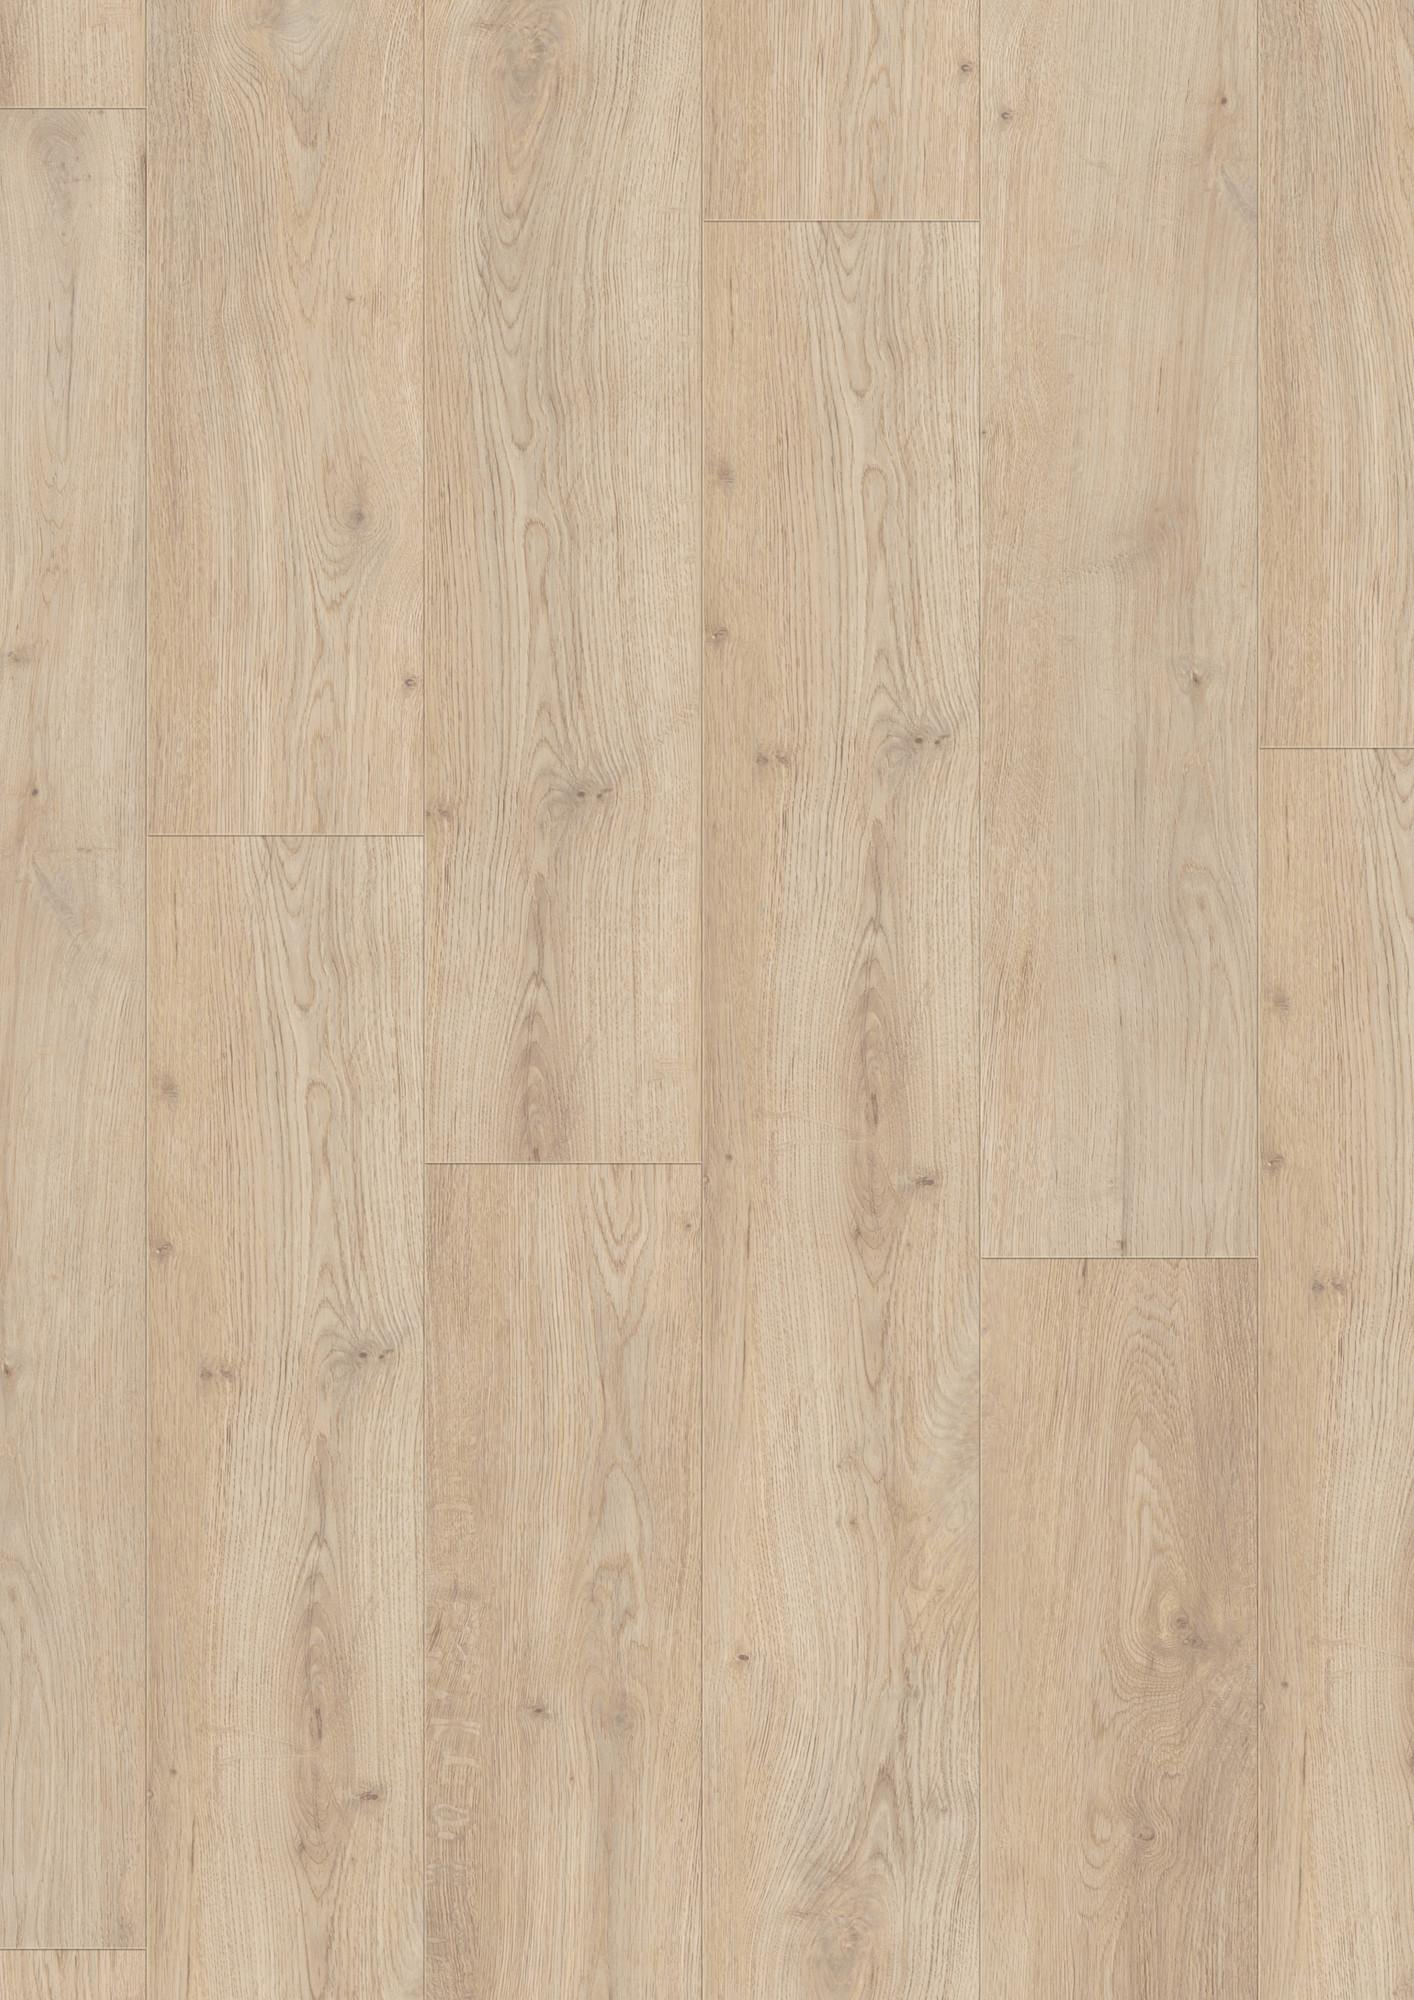 Gerflor Creation55 Clic 0504 - Twist